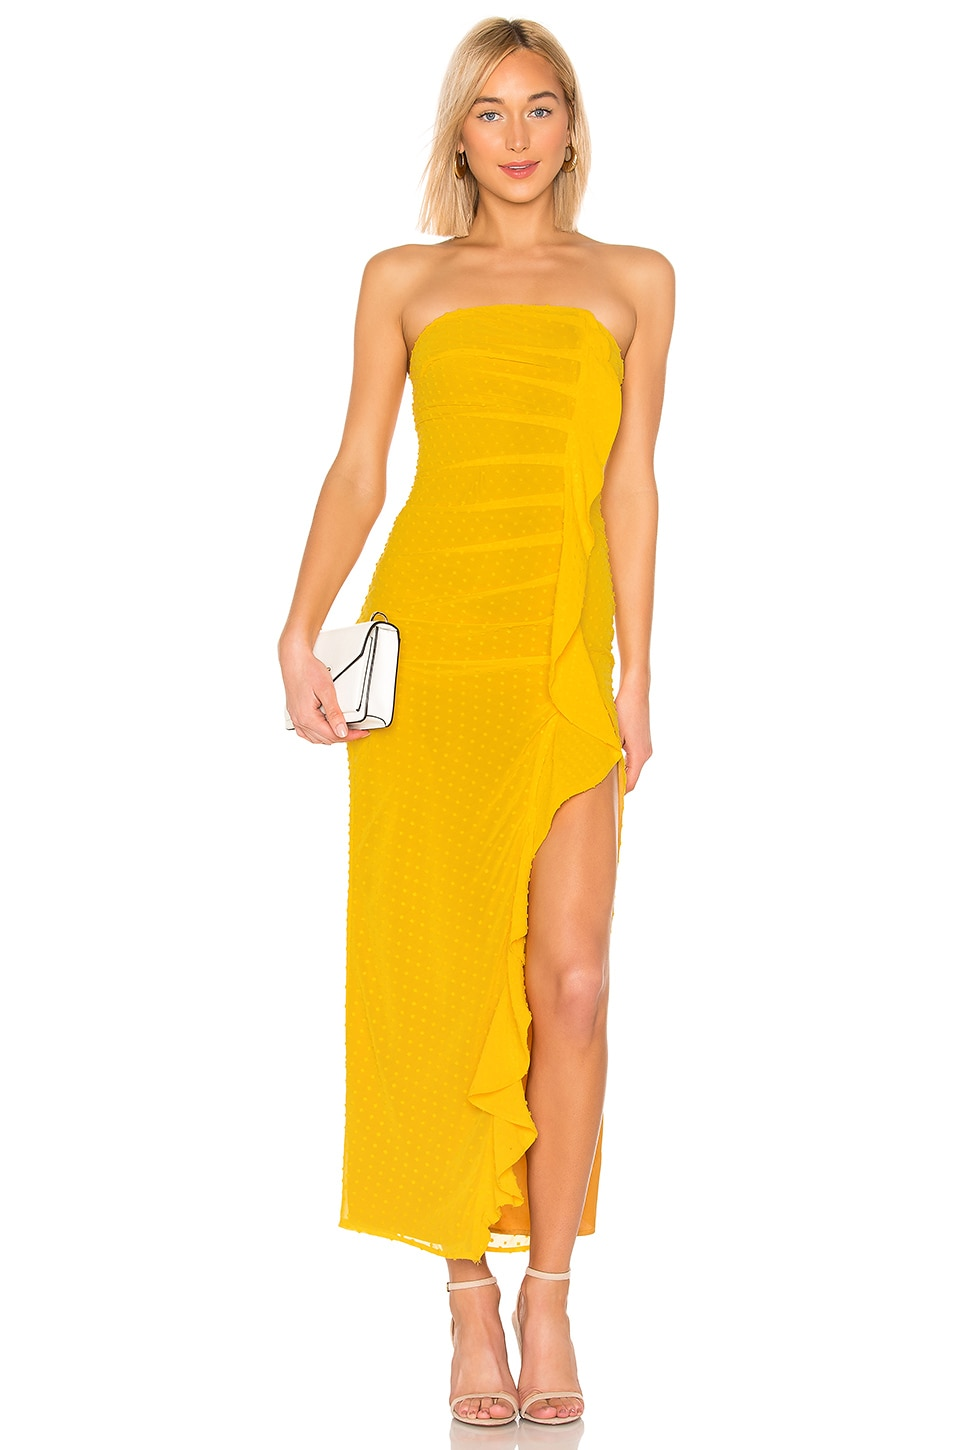 MAJORELLE Dianna Maxi Dress in Sunshine Yellow